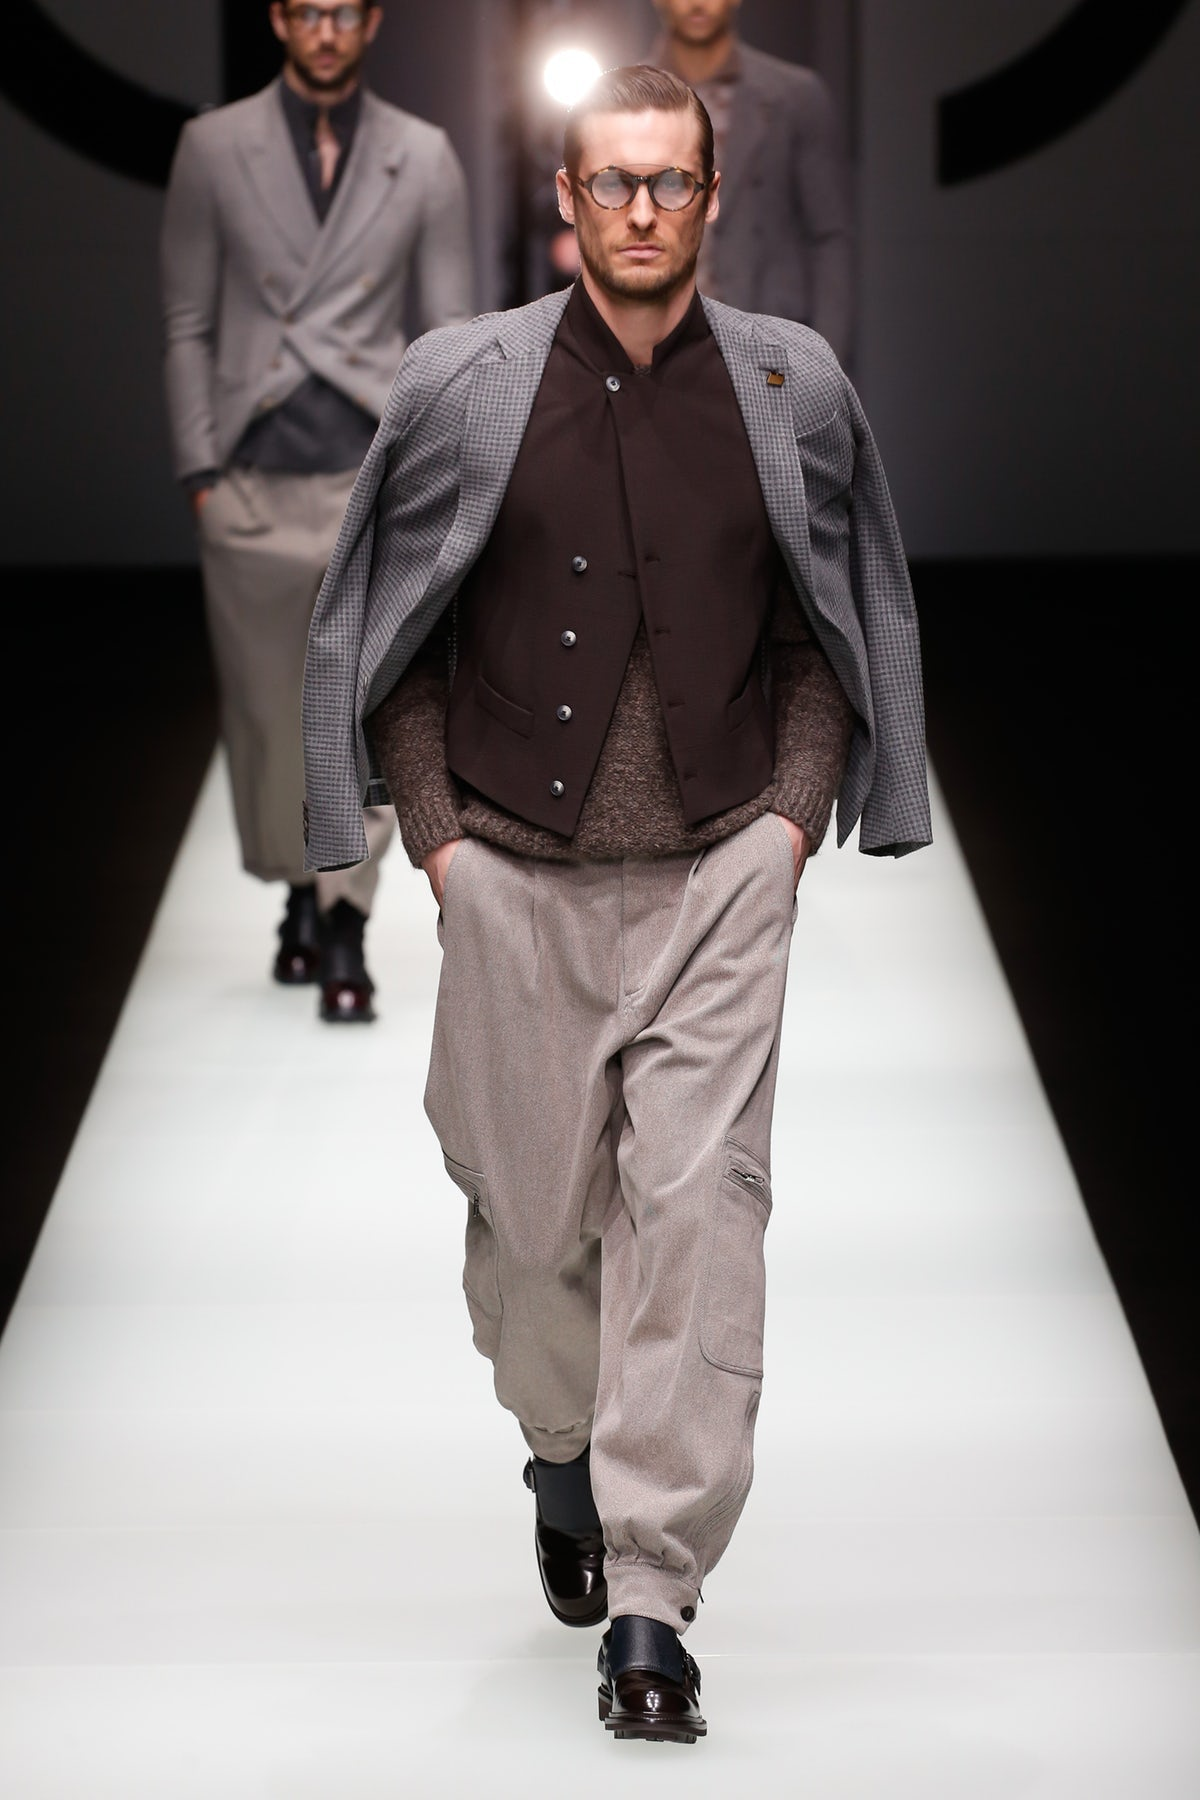 Male Glamour in Full Effect at Armani